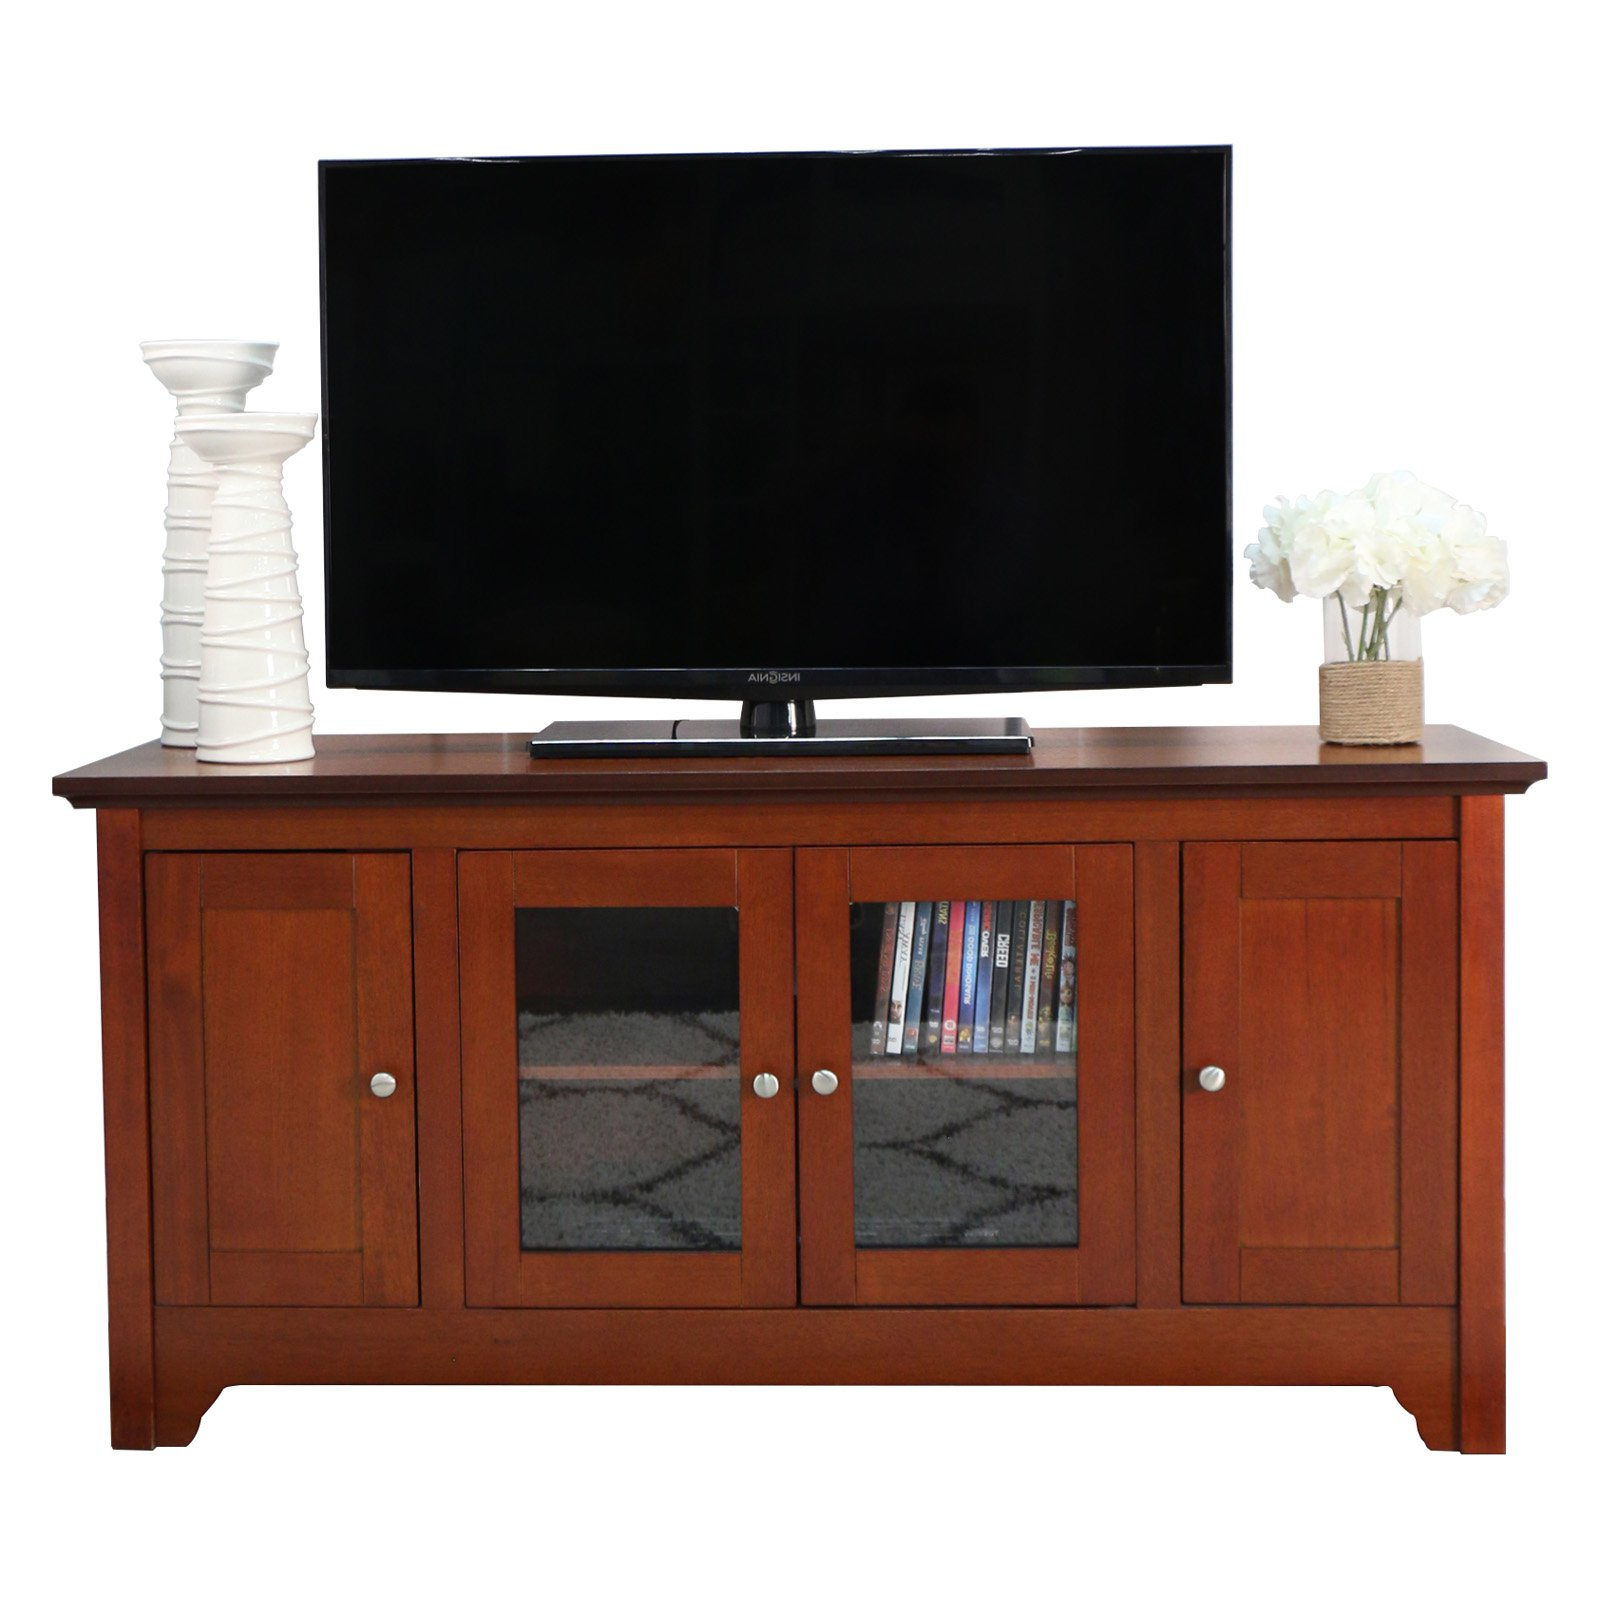 Leick Laurent 50 In. Tv Stand | Hayneedle With Regard To Laurent 50 Inch Tv Stands (Gallery 16 of 20)